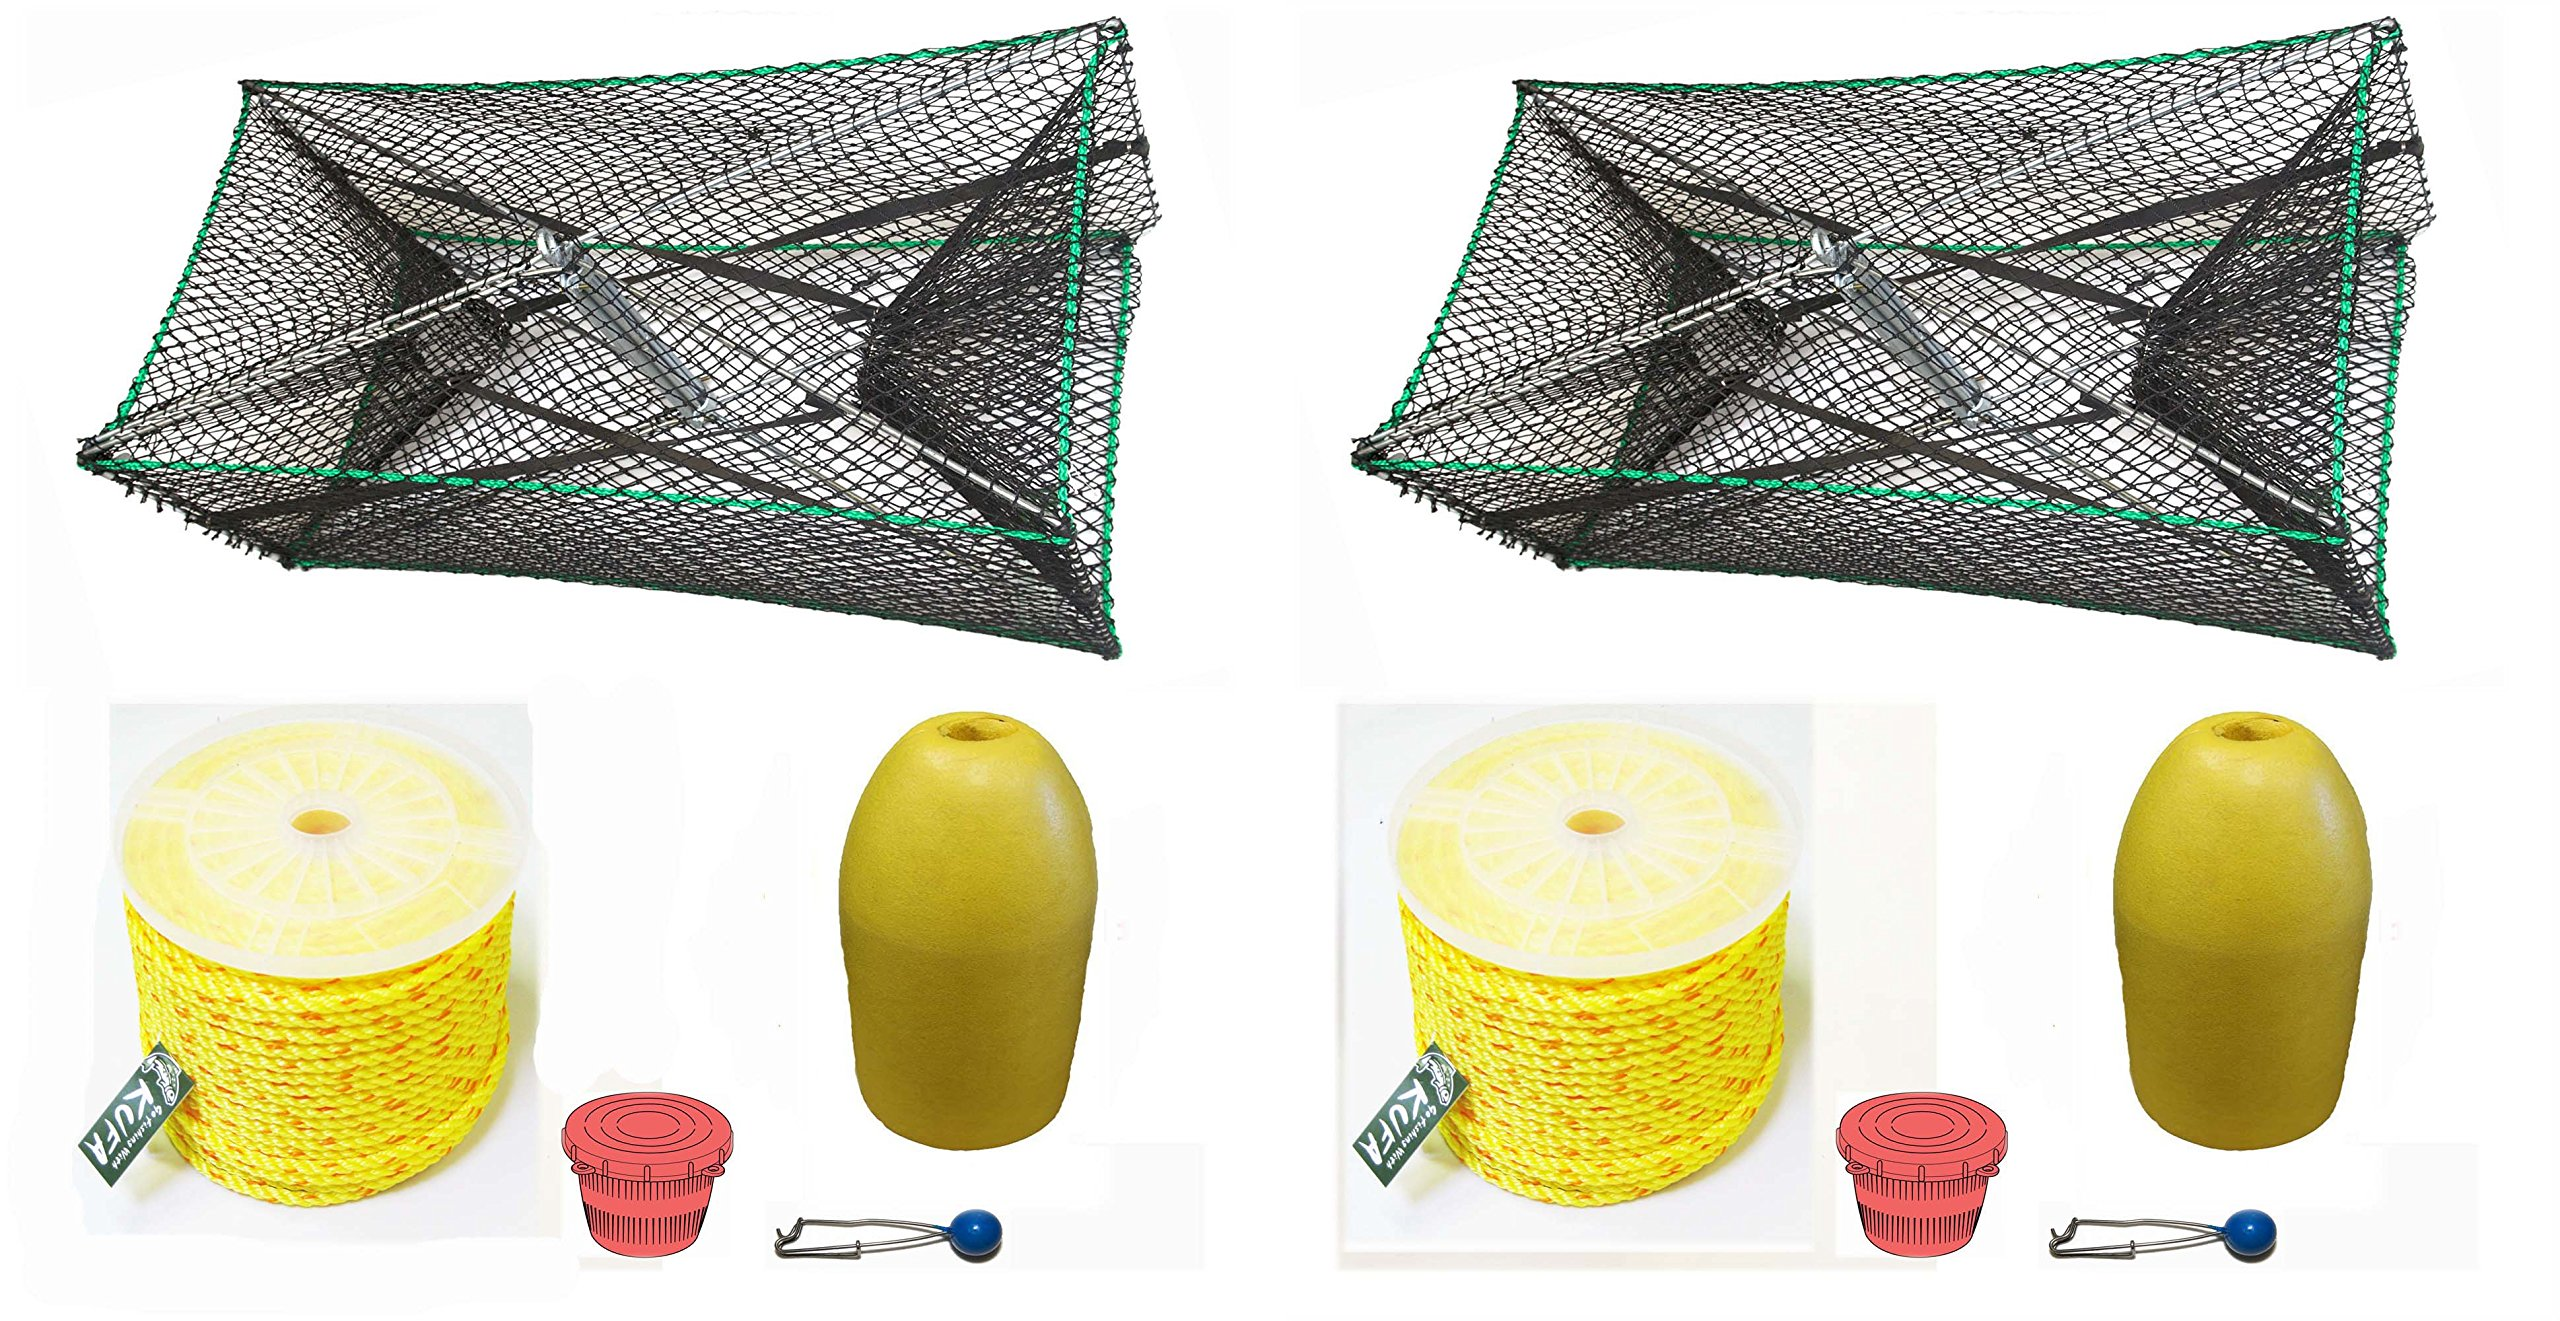 2-pack of KUFA Sports Galvanized Steel Foldable Prawn trap with 400' rope, Yellow float and Vented Bait Jar combo (S34+PAP3)x2K